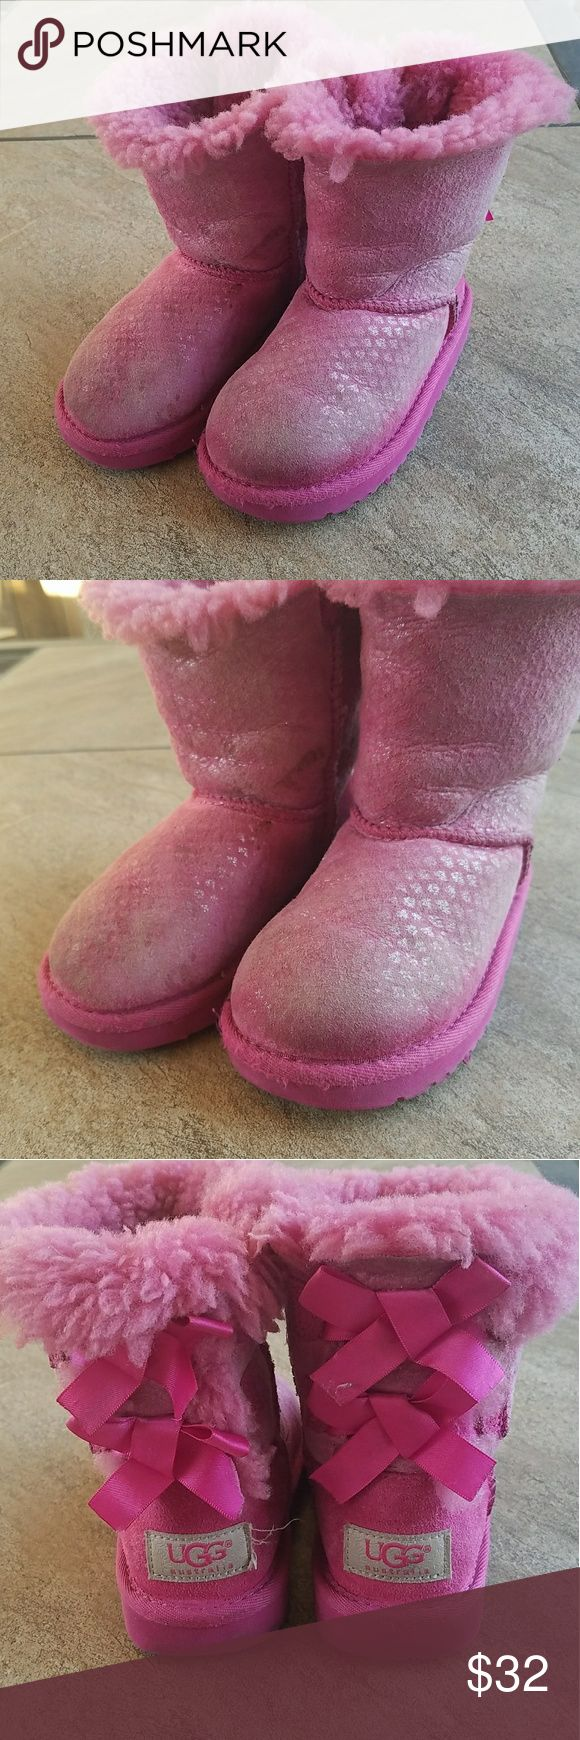 Girls UGG boots These are in good condition a little dirty but no major wear. UGG Shoes Boots